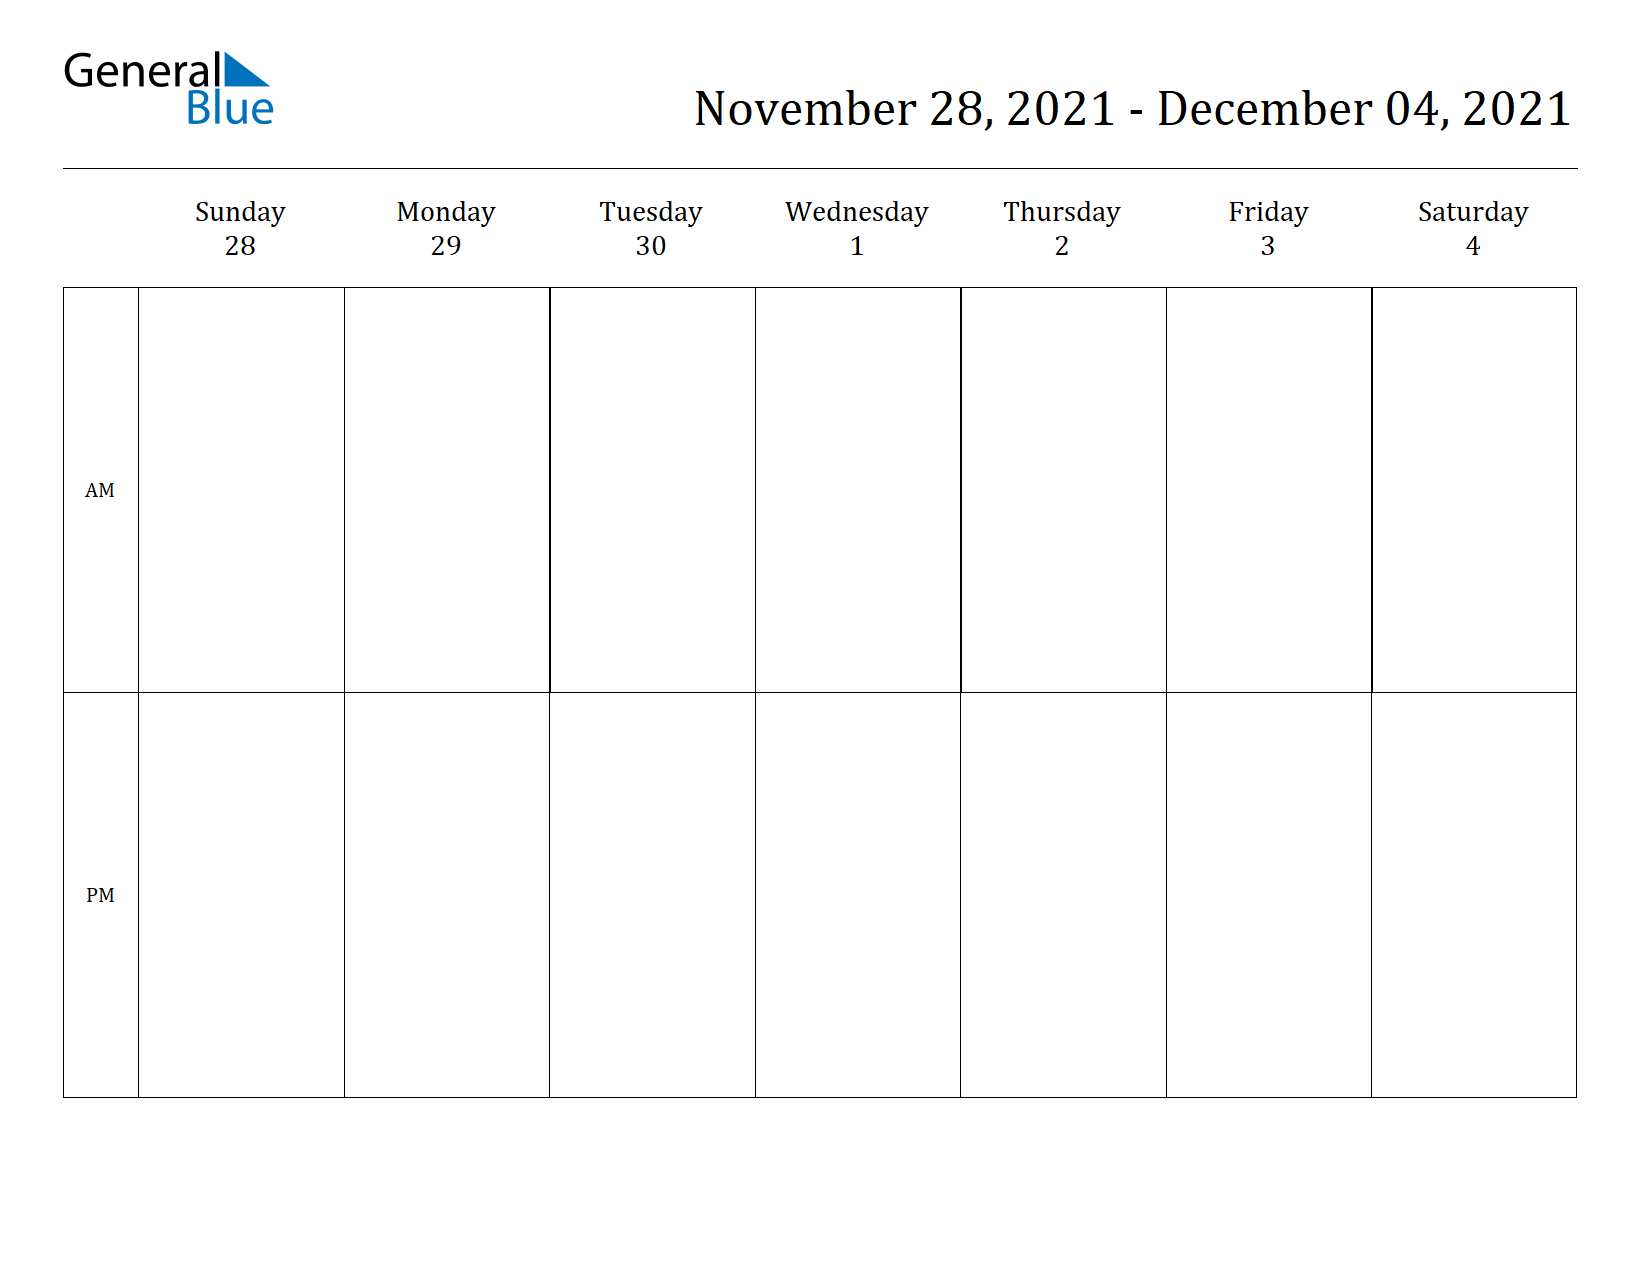 Weekly Calendar for Nov 28, 2021 to Dec 04, 2021